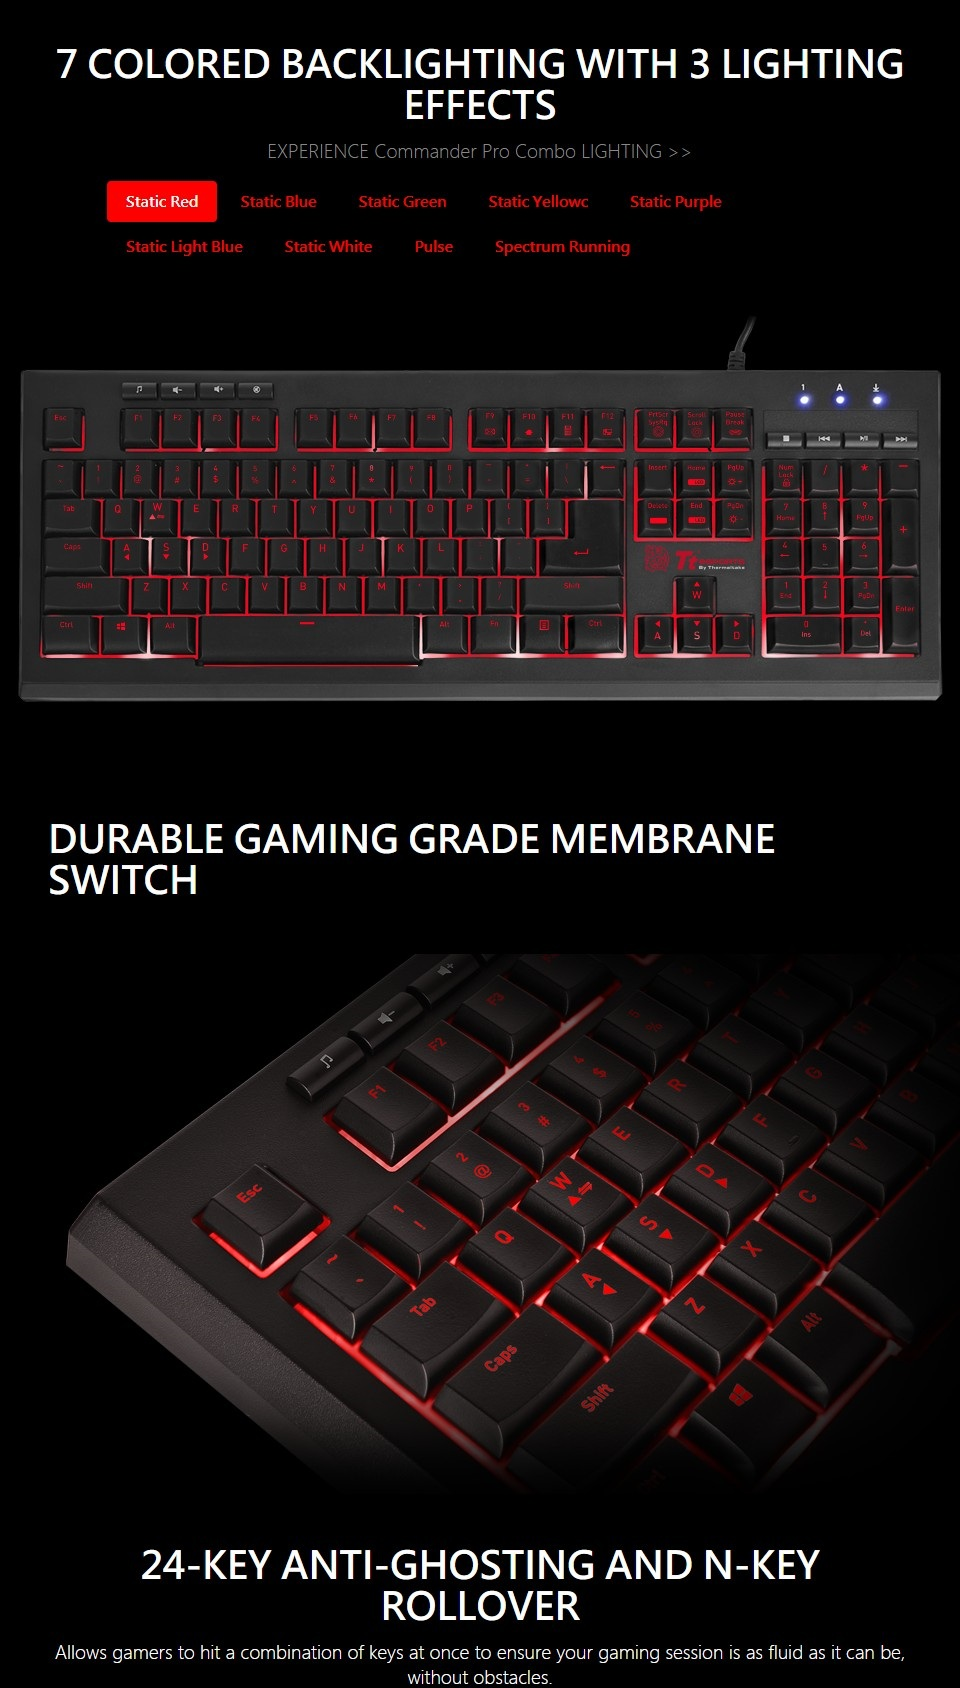 Tt eSPORTS Commander Pro Gaming Keyboard and Mouse Combo features